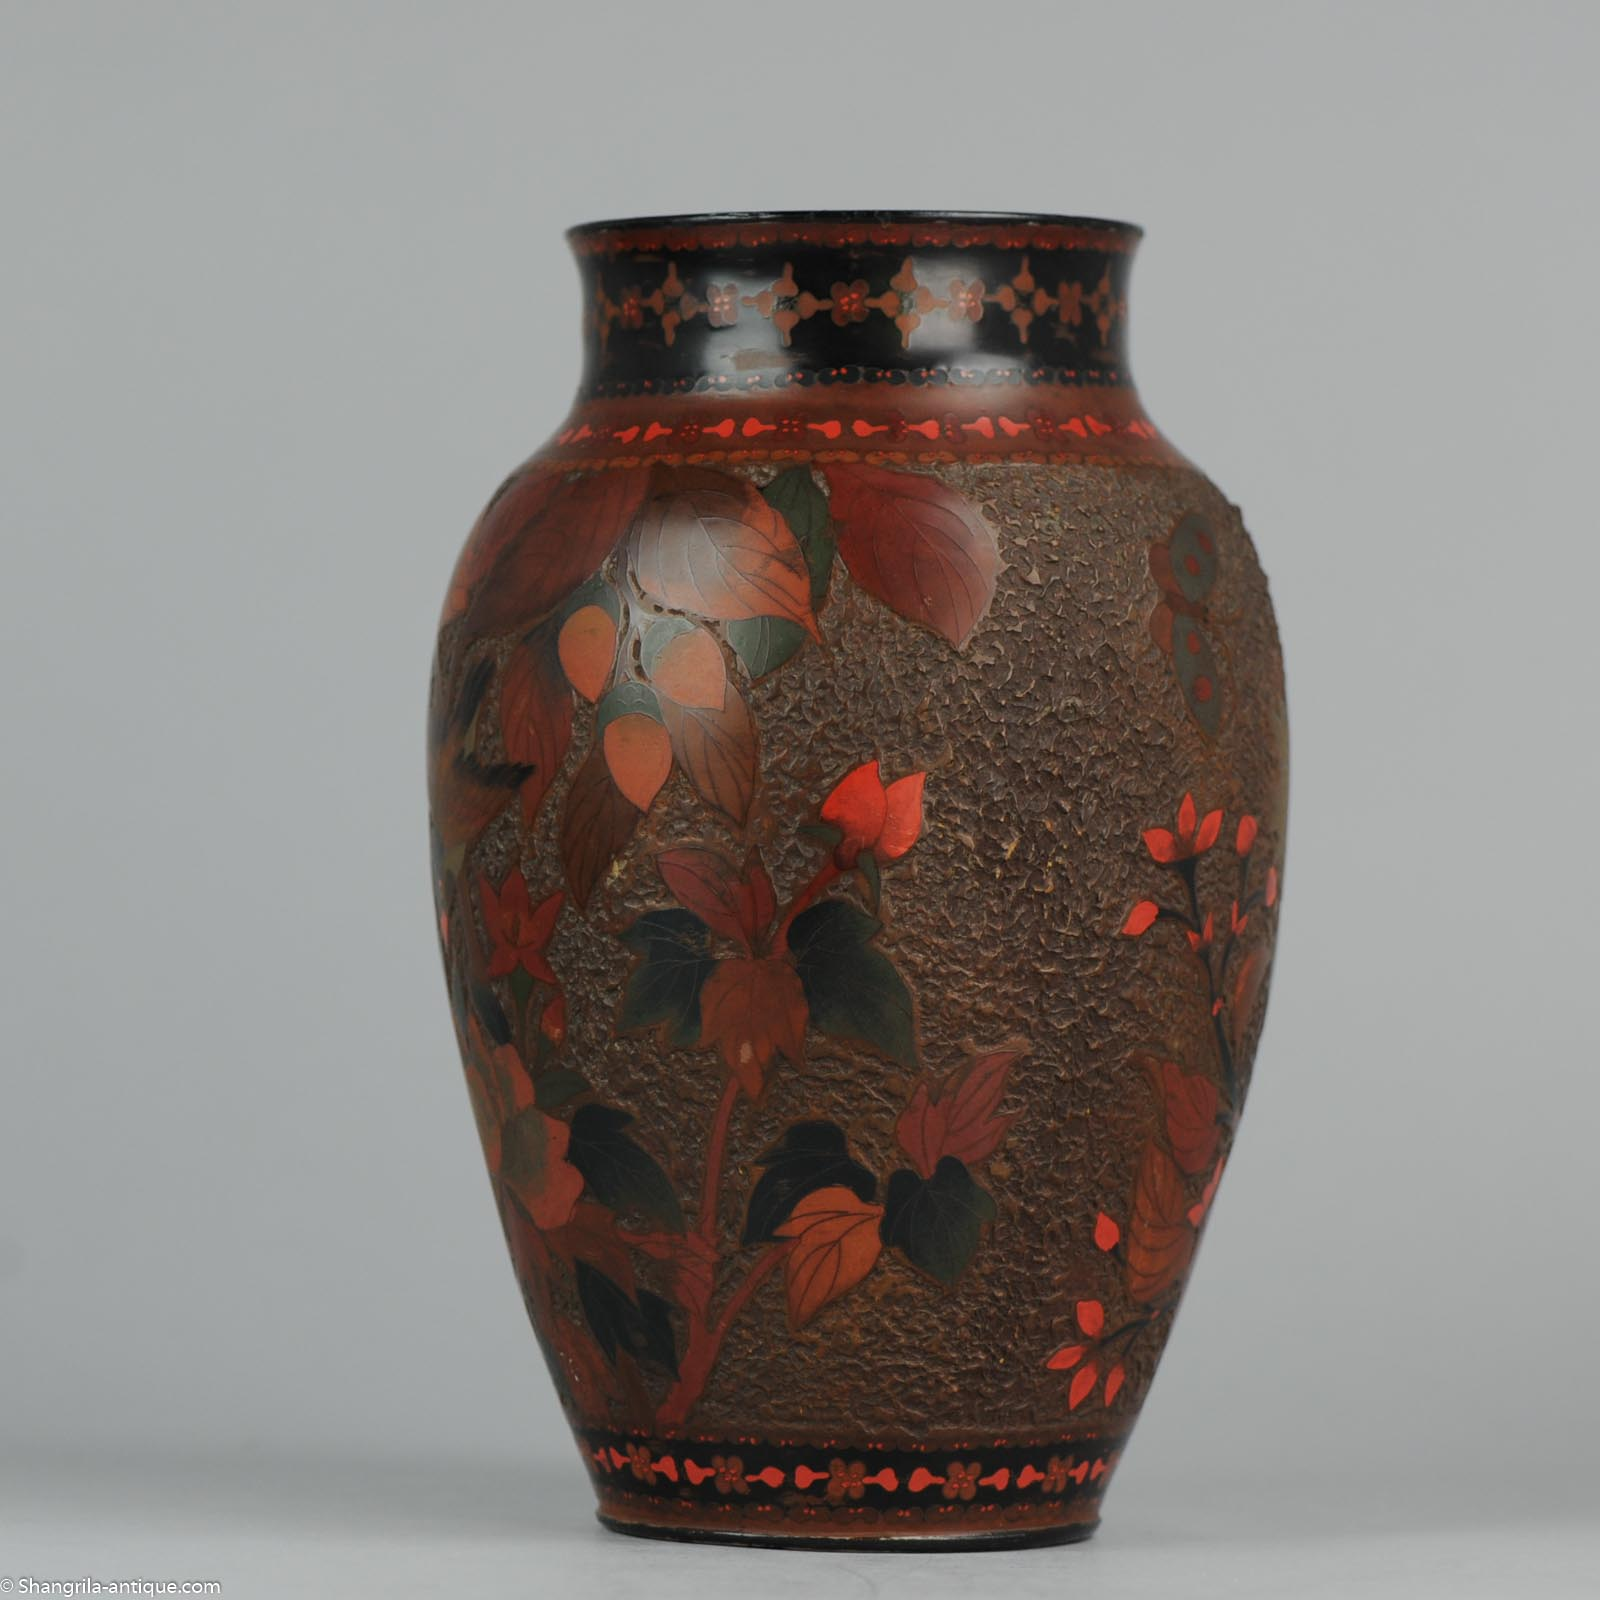 19c Meiji Period Japanese Totai Shippo Cloisonne On